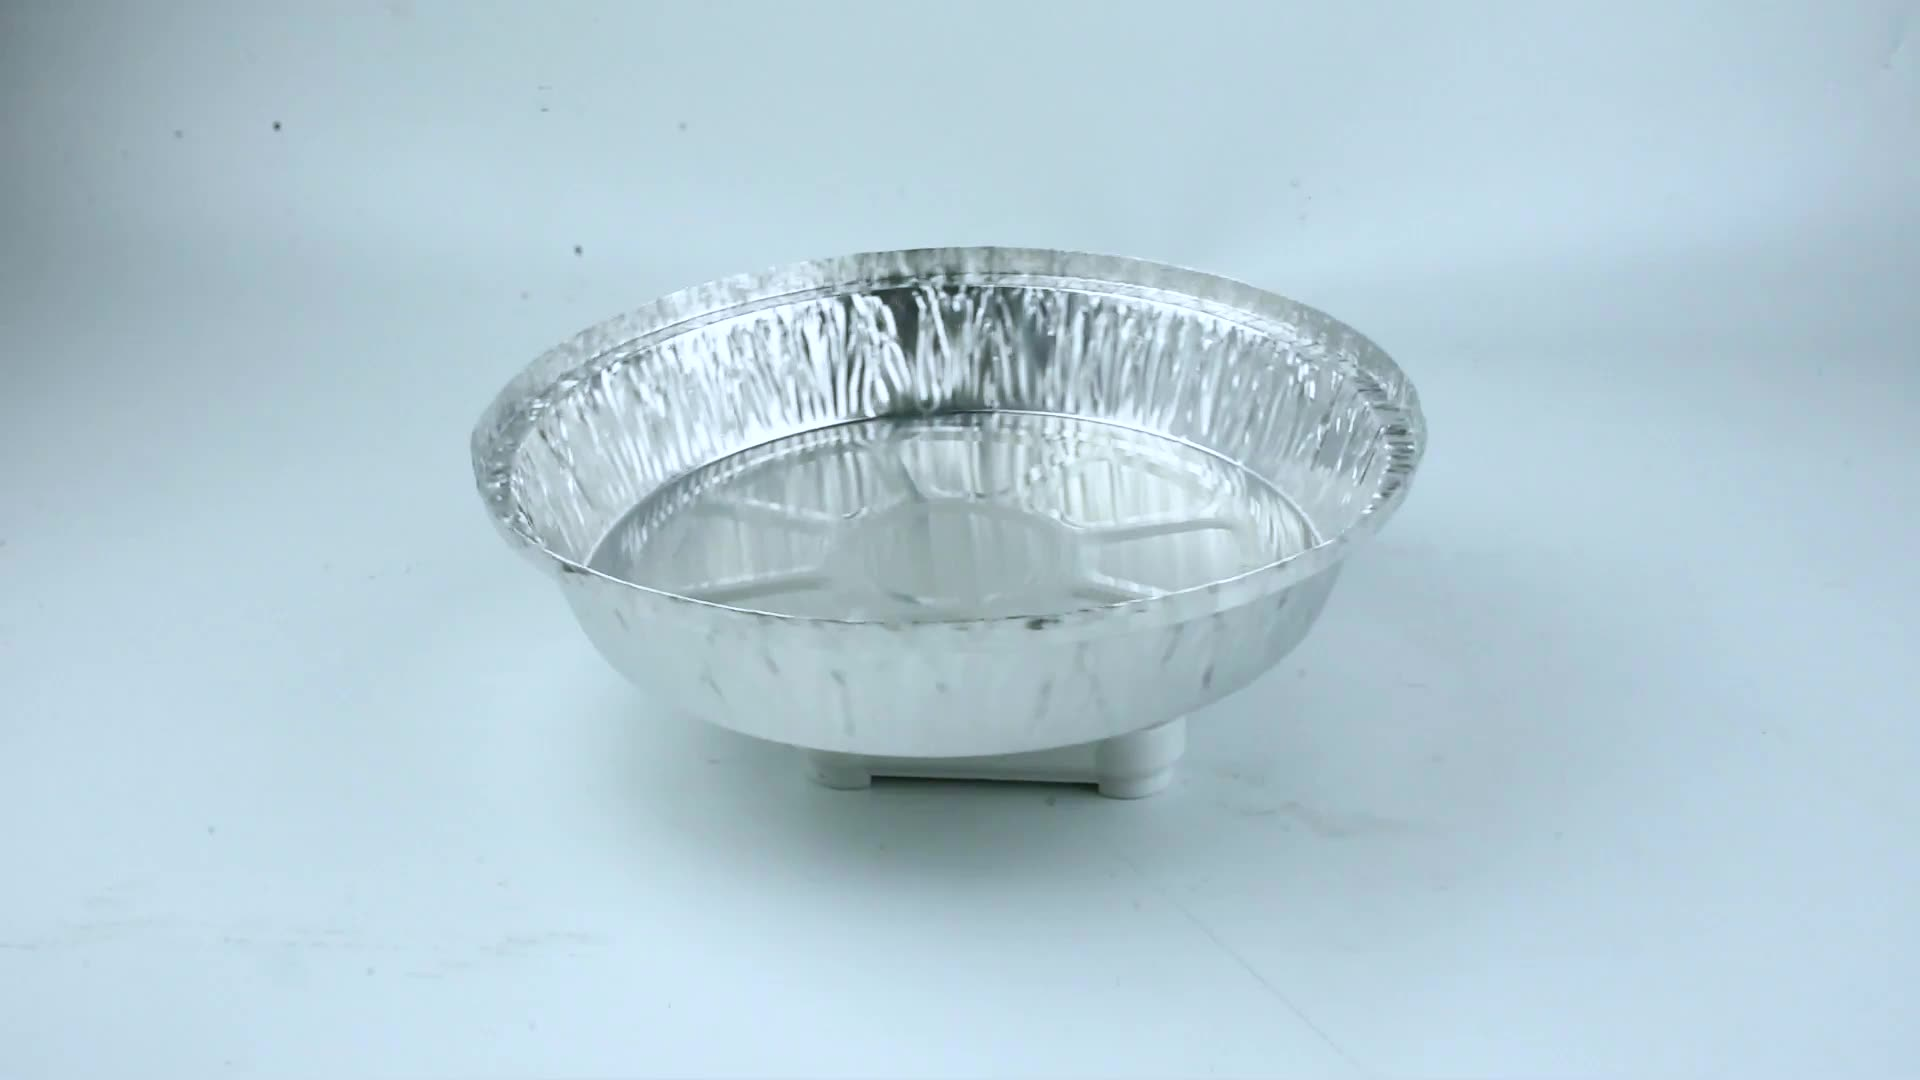 Top quality low price 8011 alloy embossed round disposable aluminum foil food container